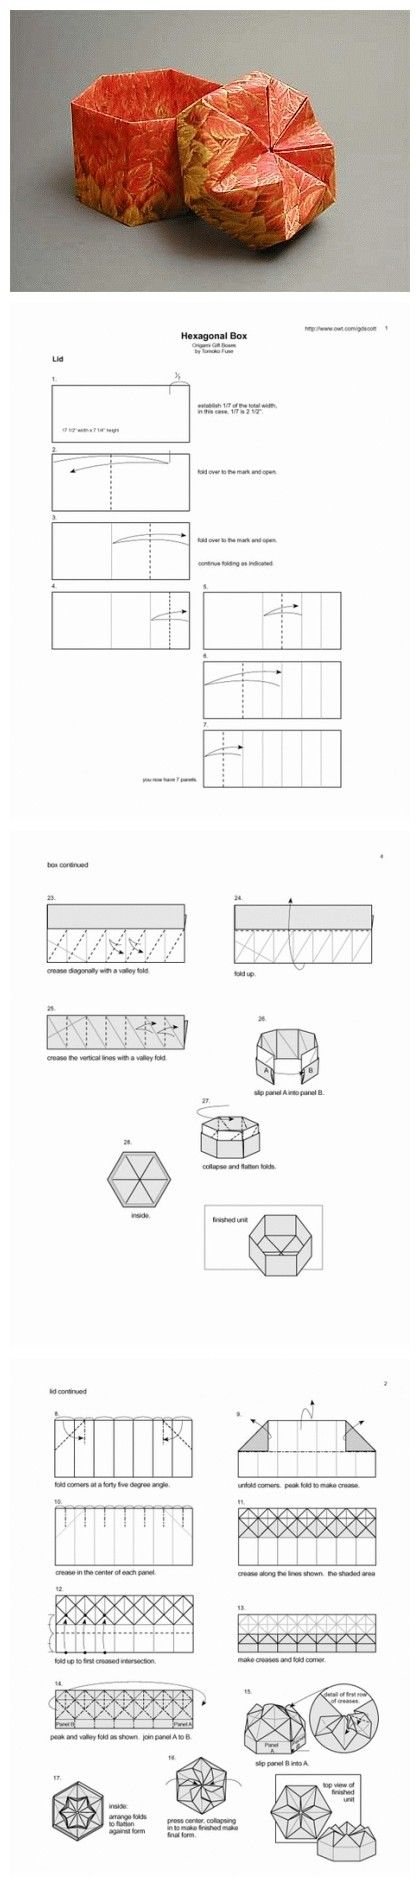 Origami Hexagonal Box Folding Instructions